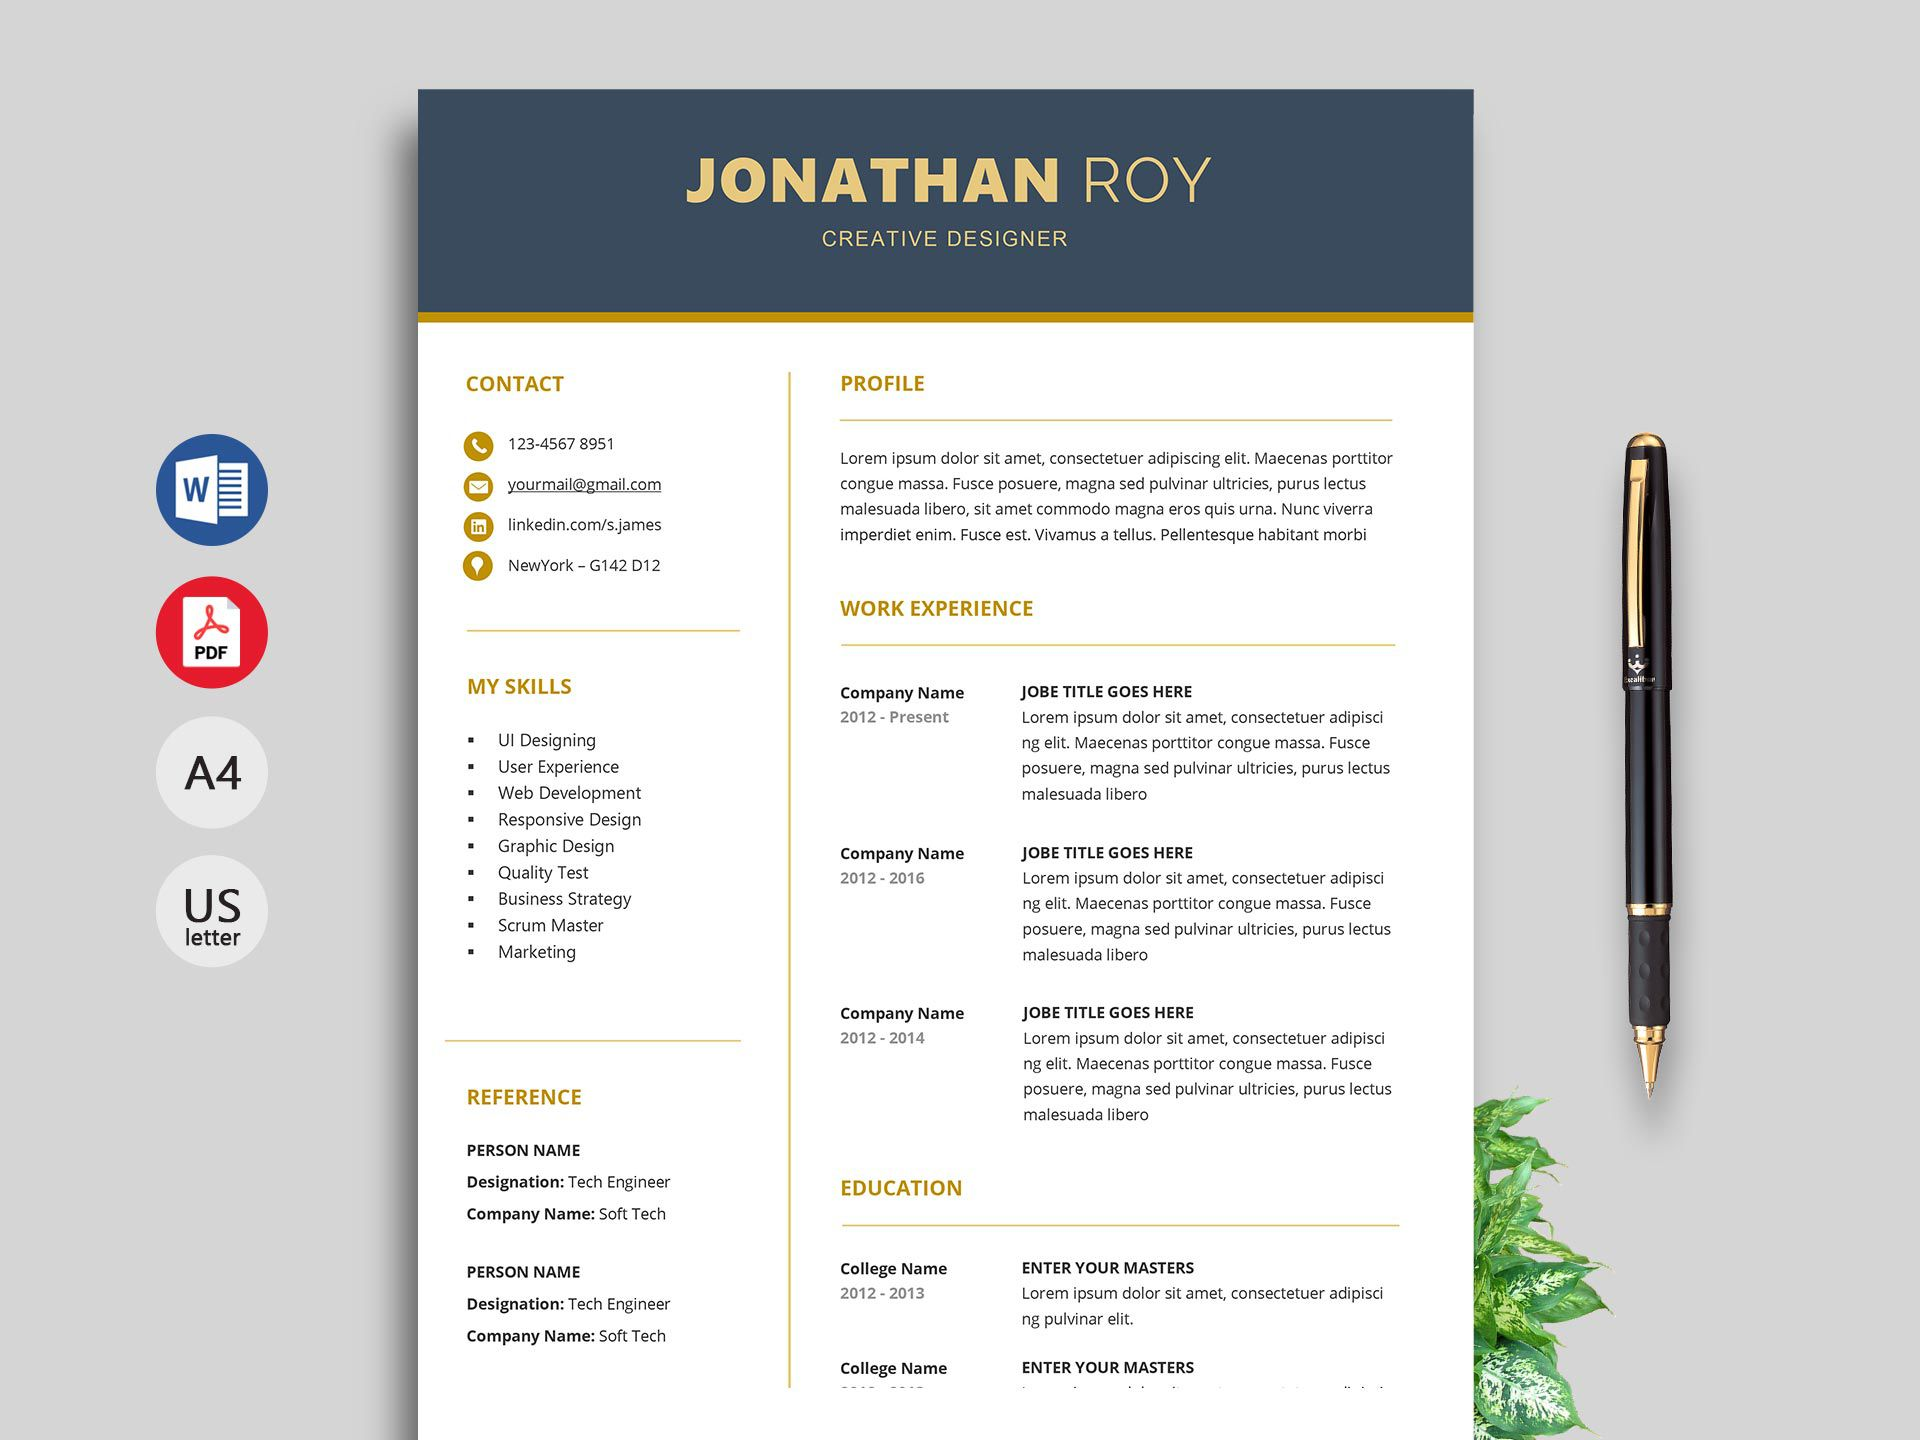 006 Marvelou Resume Template On Word Picture  2007 Download 2016 How To Get 2010Full